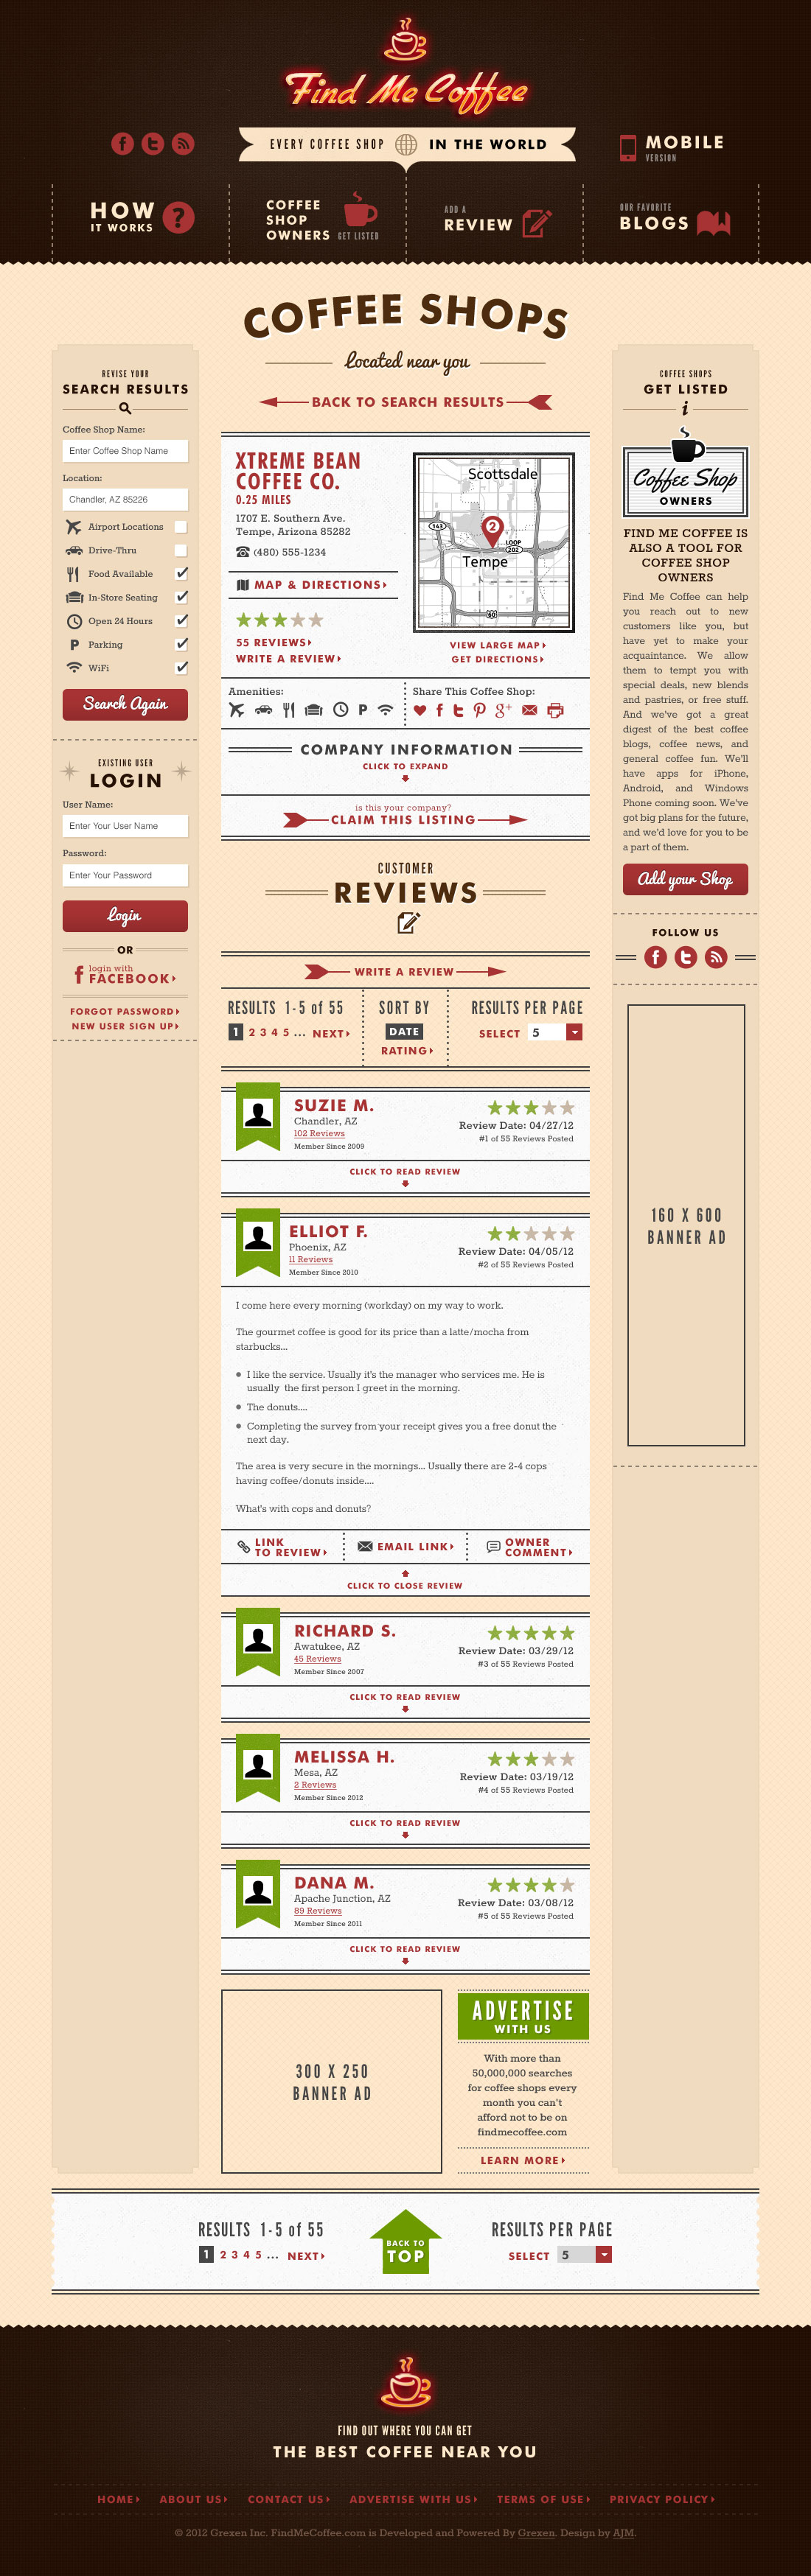 Find Me Coffee Results Page